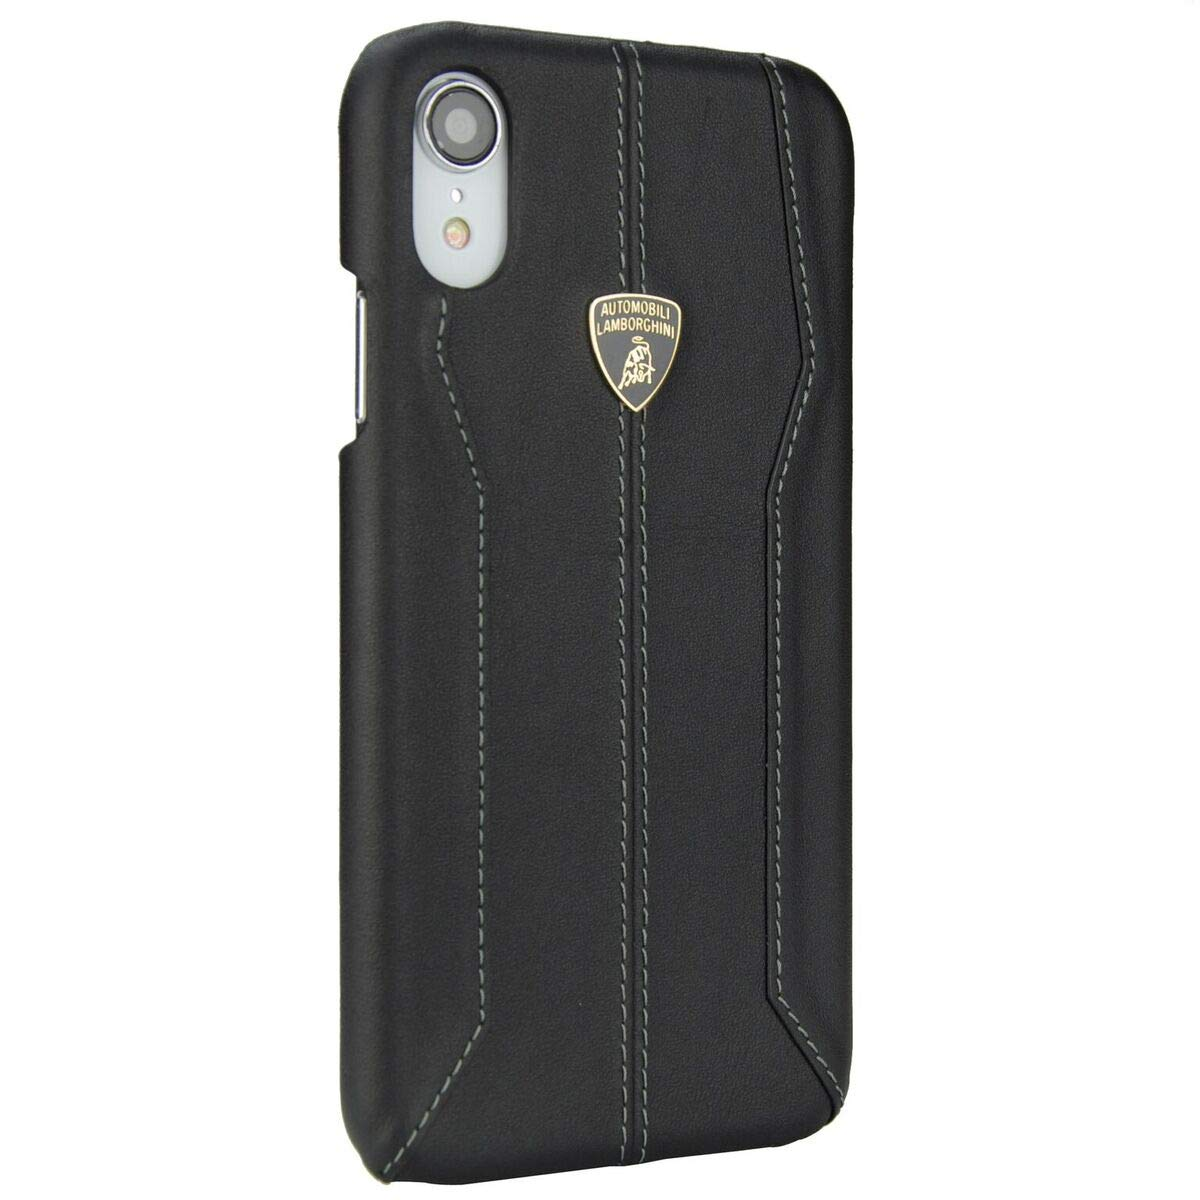 huge selection of 289b1 c3da8 Amazon.com: Lamborghini Huracan-D1 Leather Back Cover Case for ...